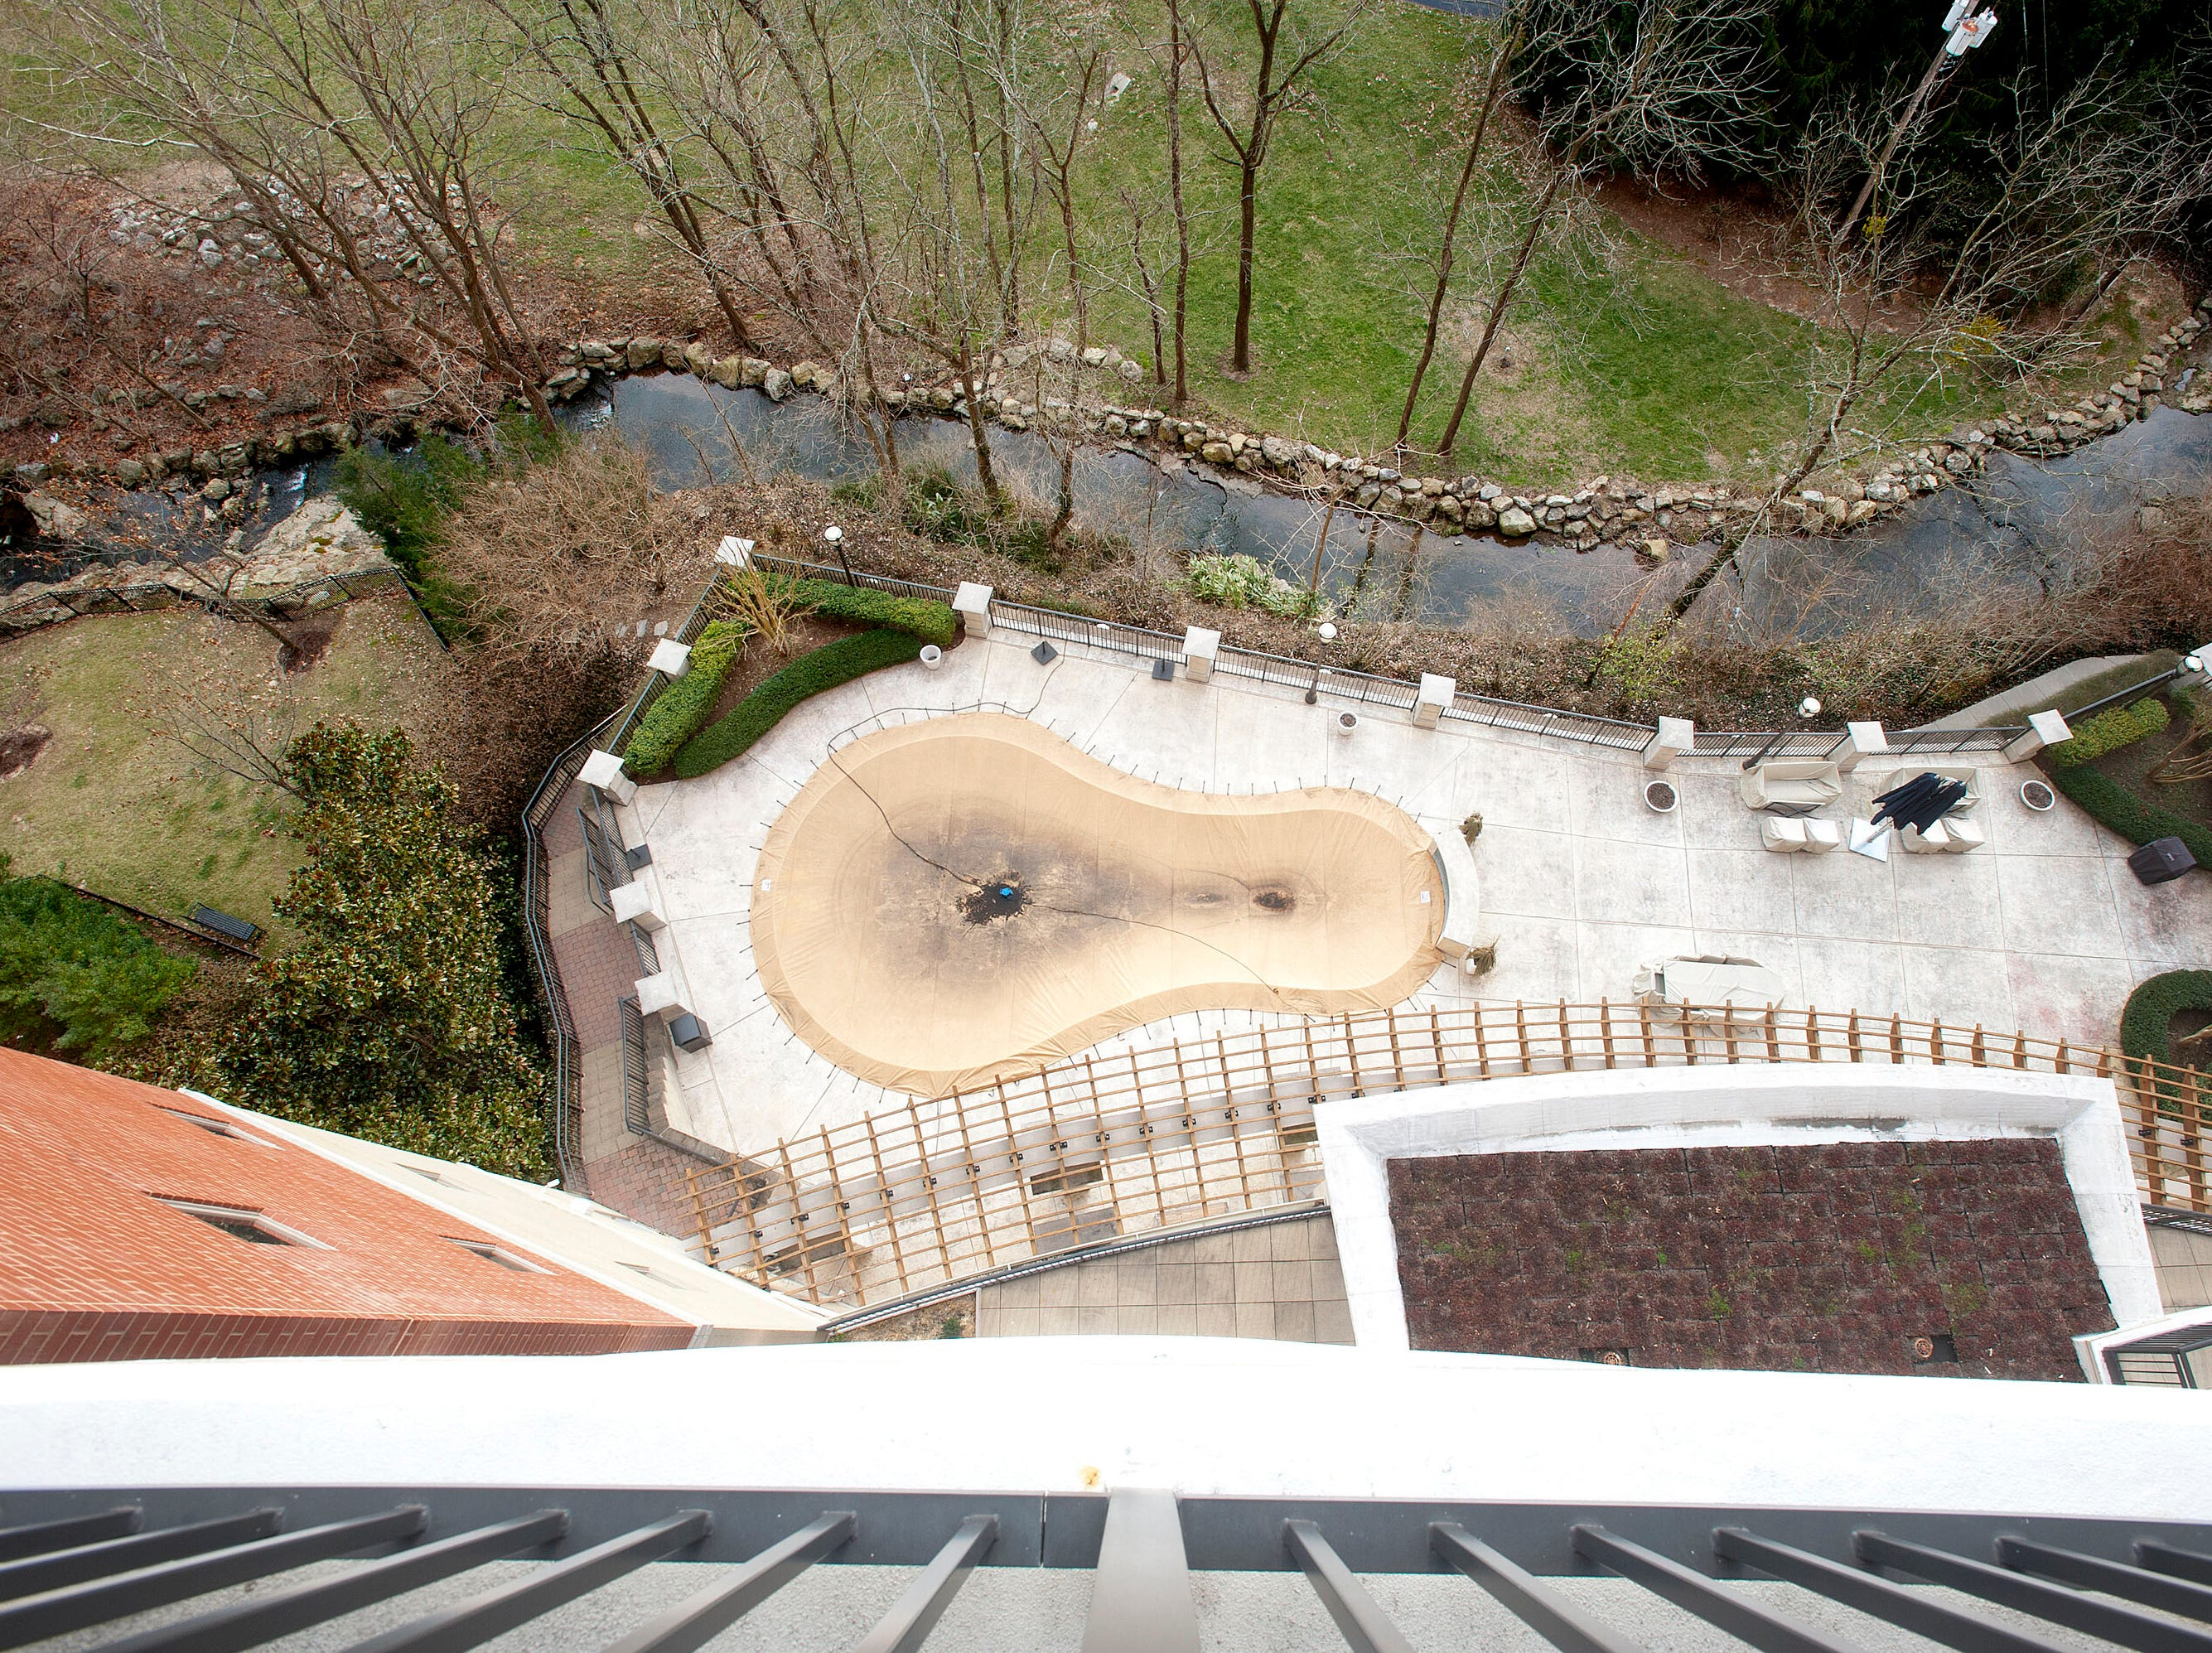 A view of a brook and The George's swimming pool from the balcony in the Denise Puthuff's unit.